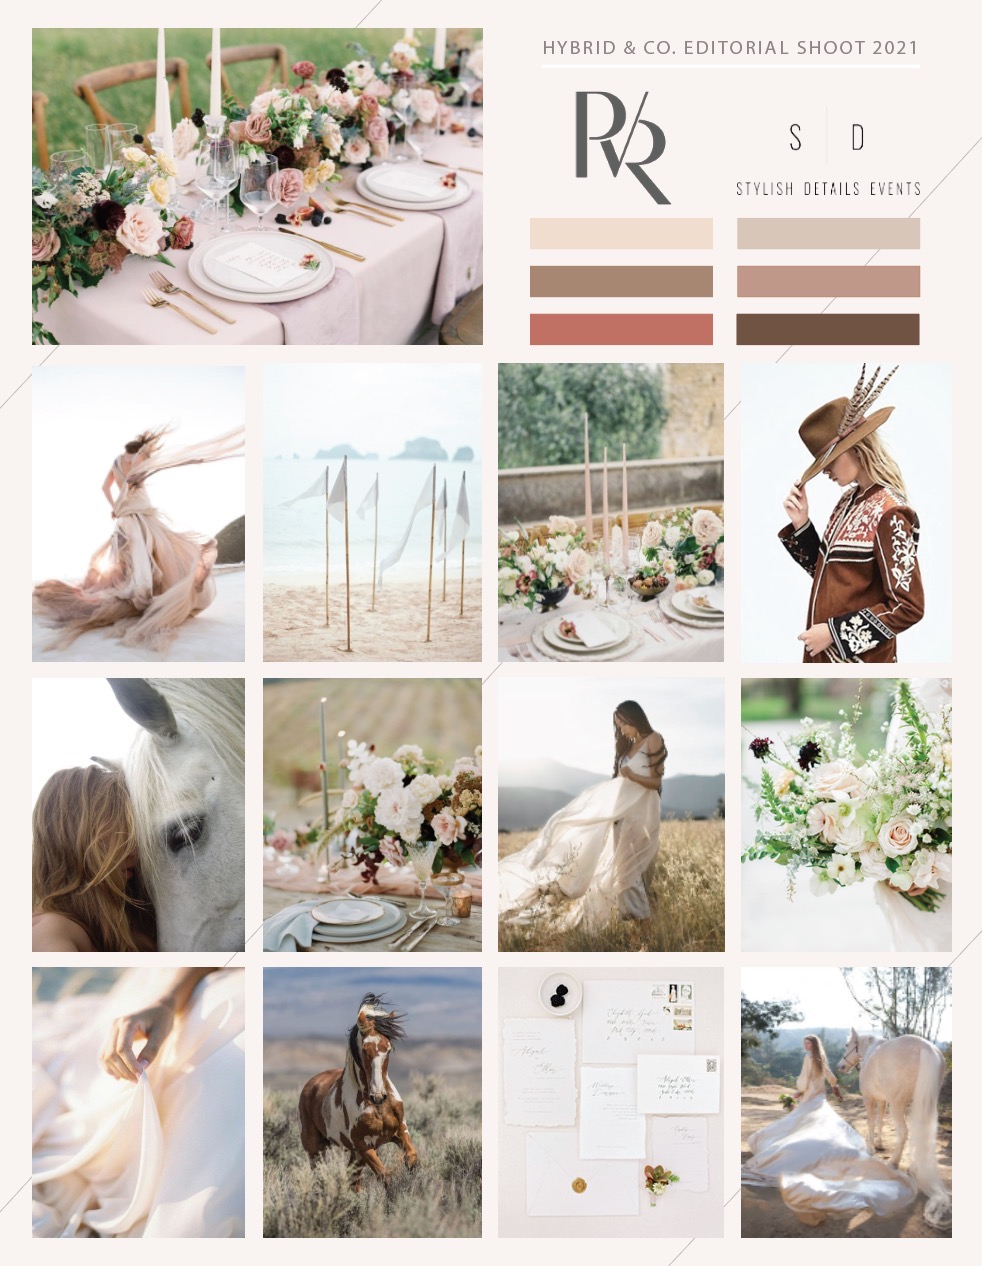 Paul Von Rieter Styled Shoot 4:30-7:30pm  Tuesday